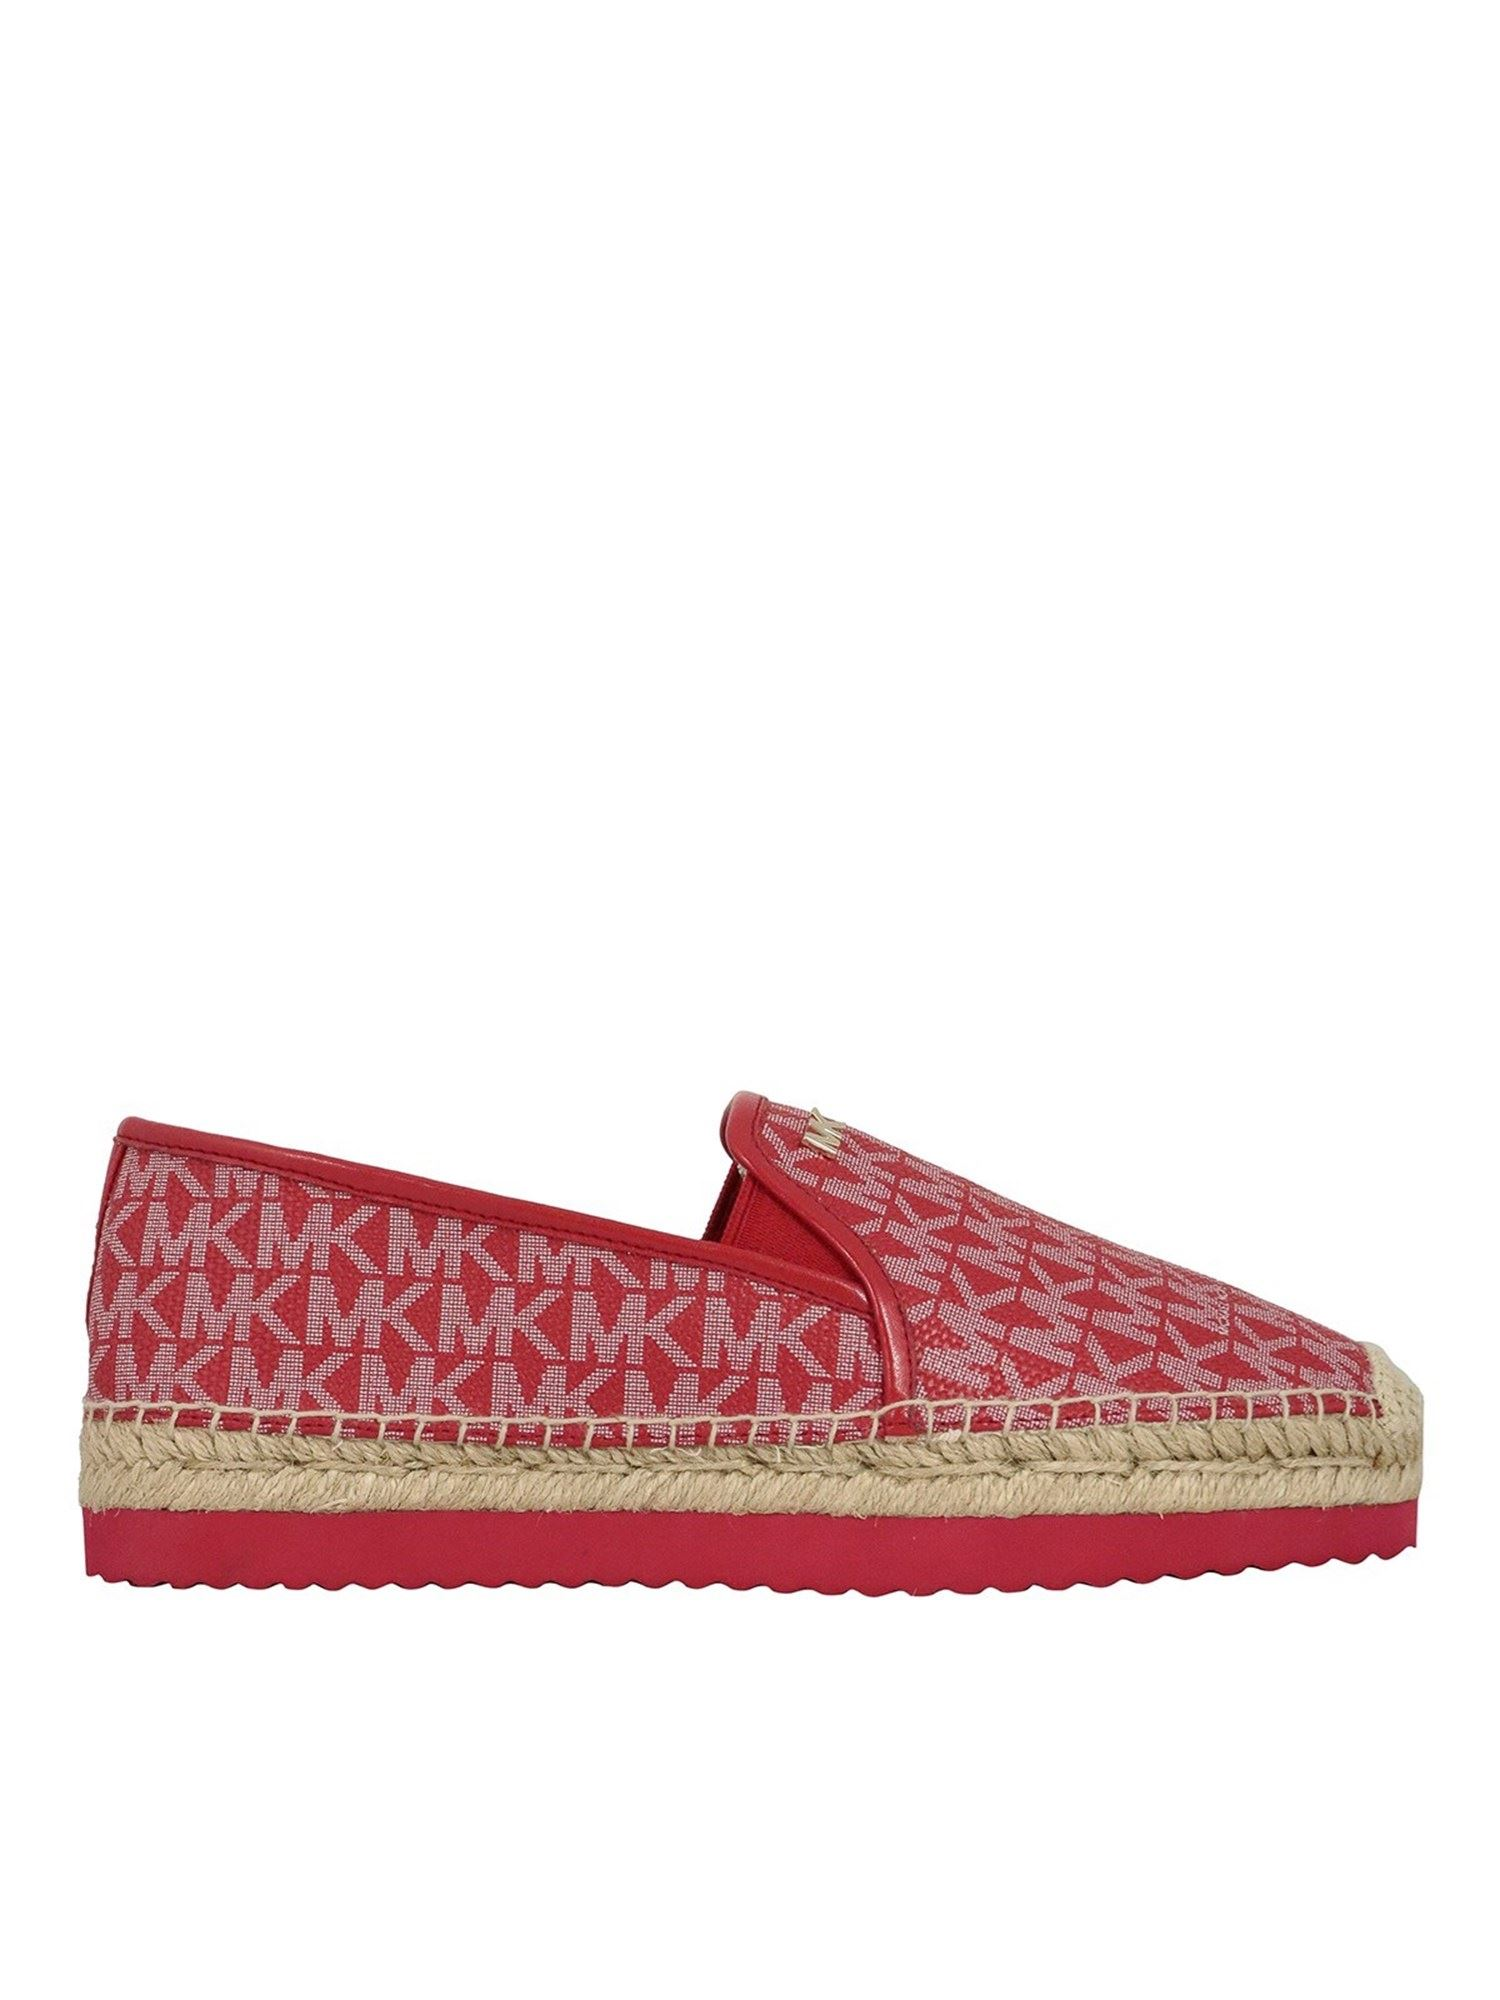 Michael Kors Leathers LOGOED LEATHER ESPADRILLES IN RED